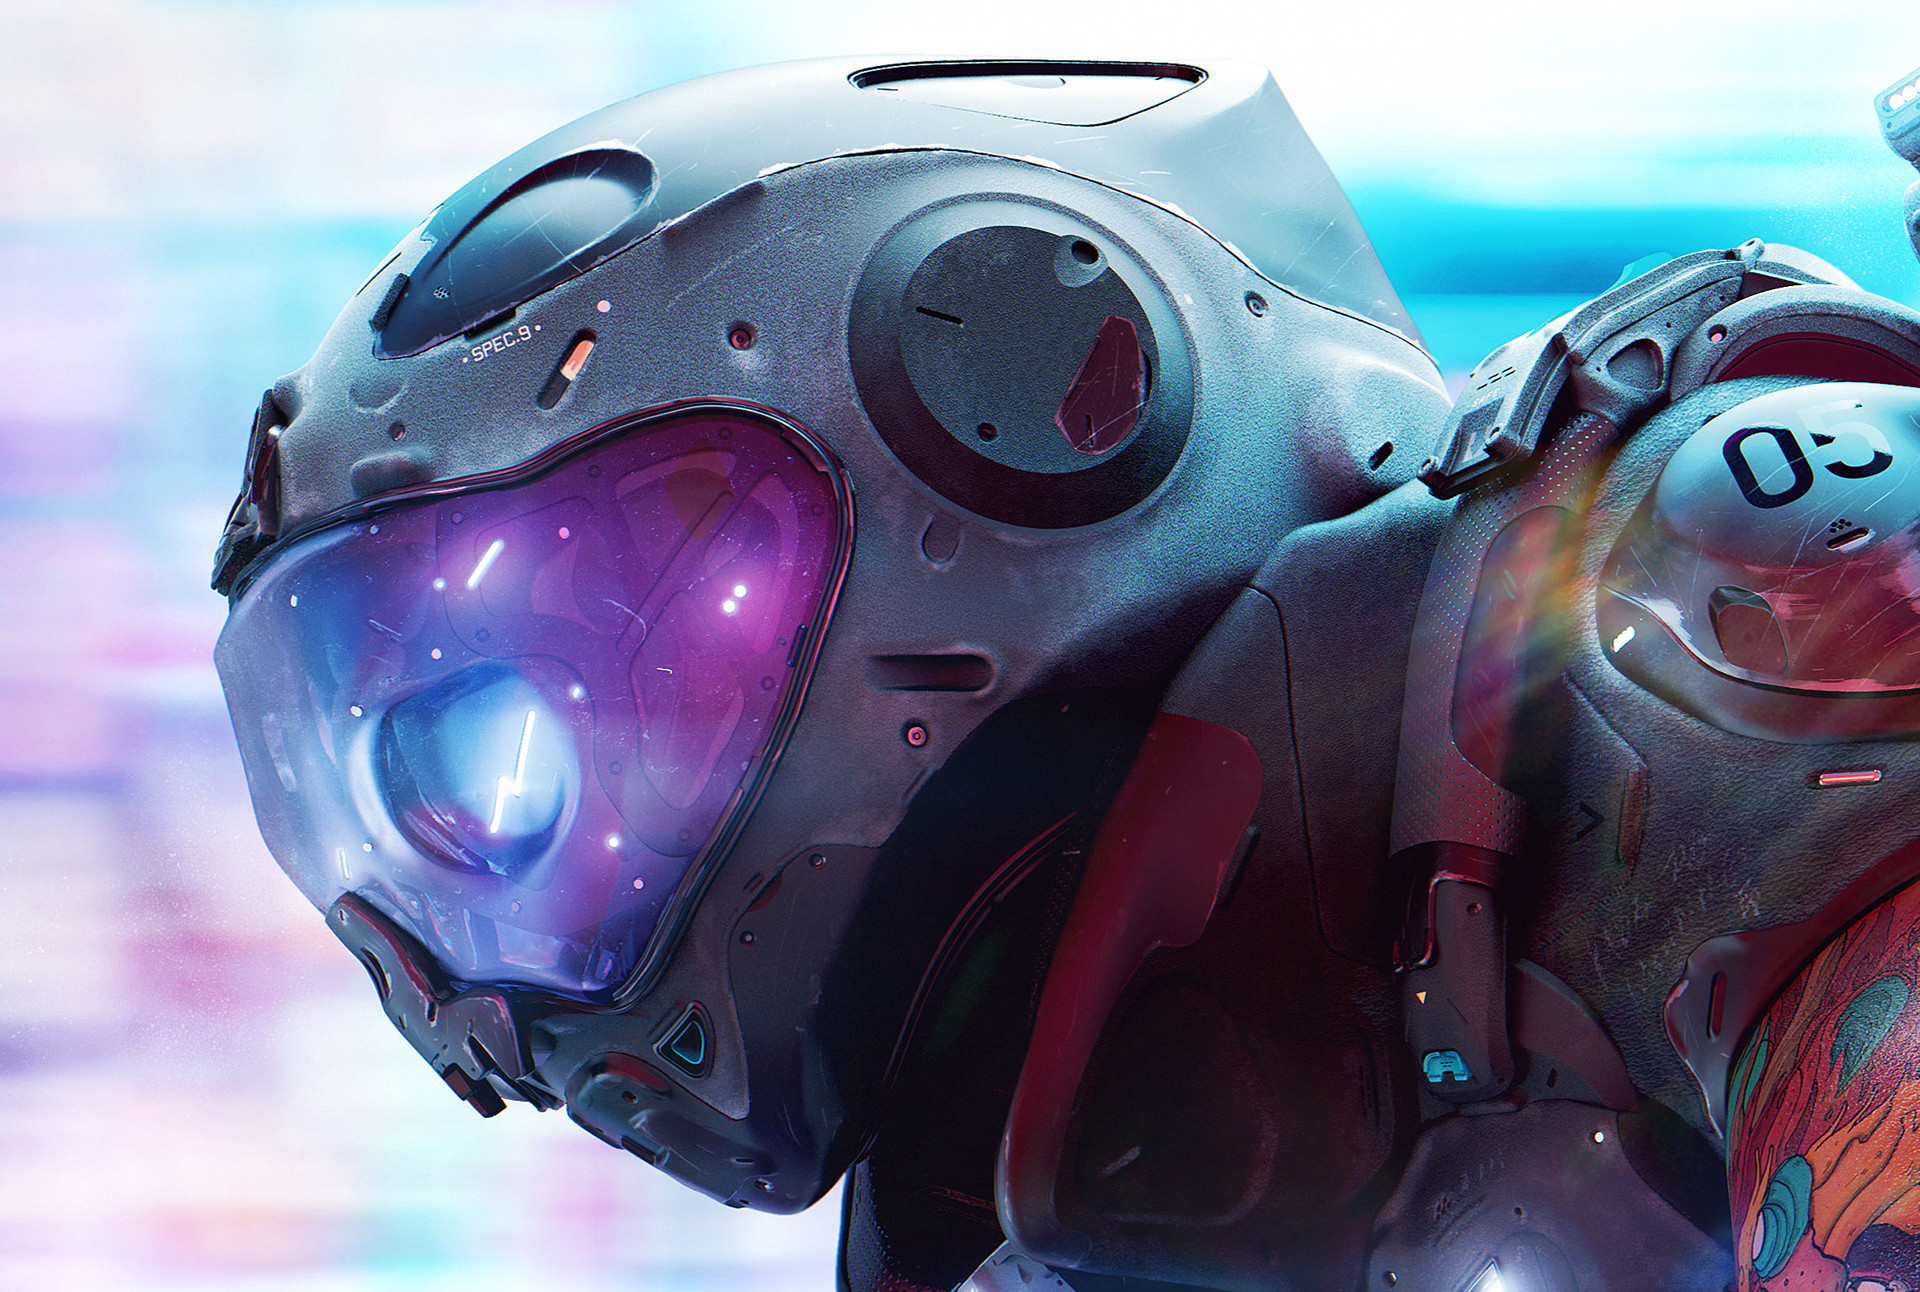 The Mind Blowing 3d Sci-Fi Art of Nelson Tai